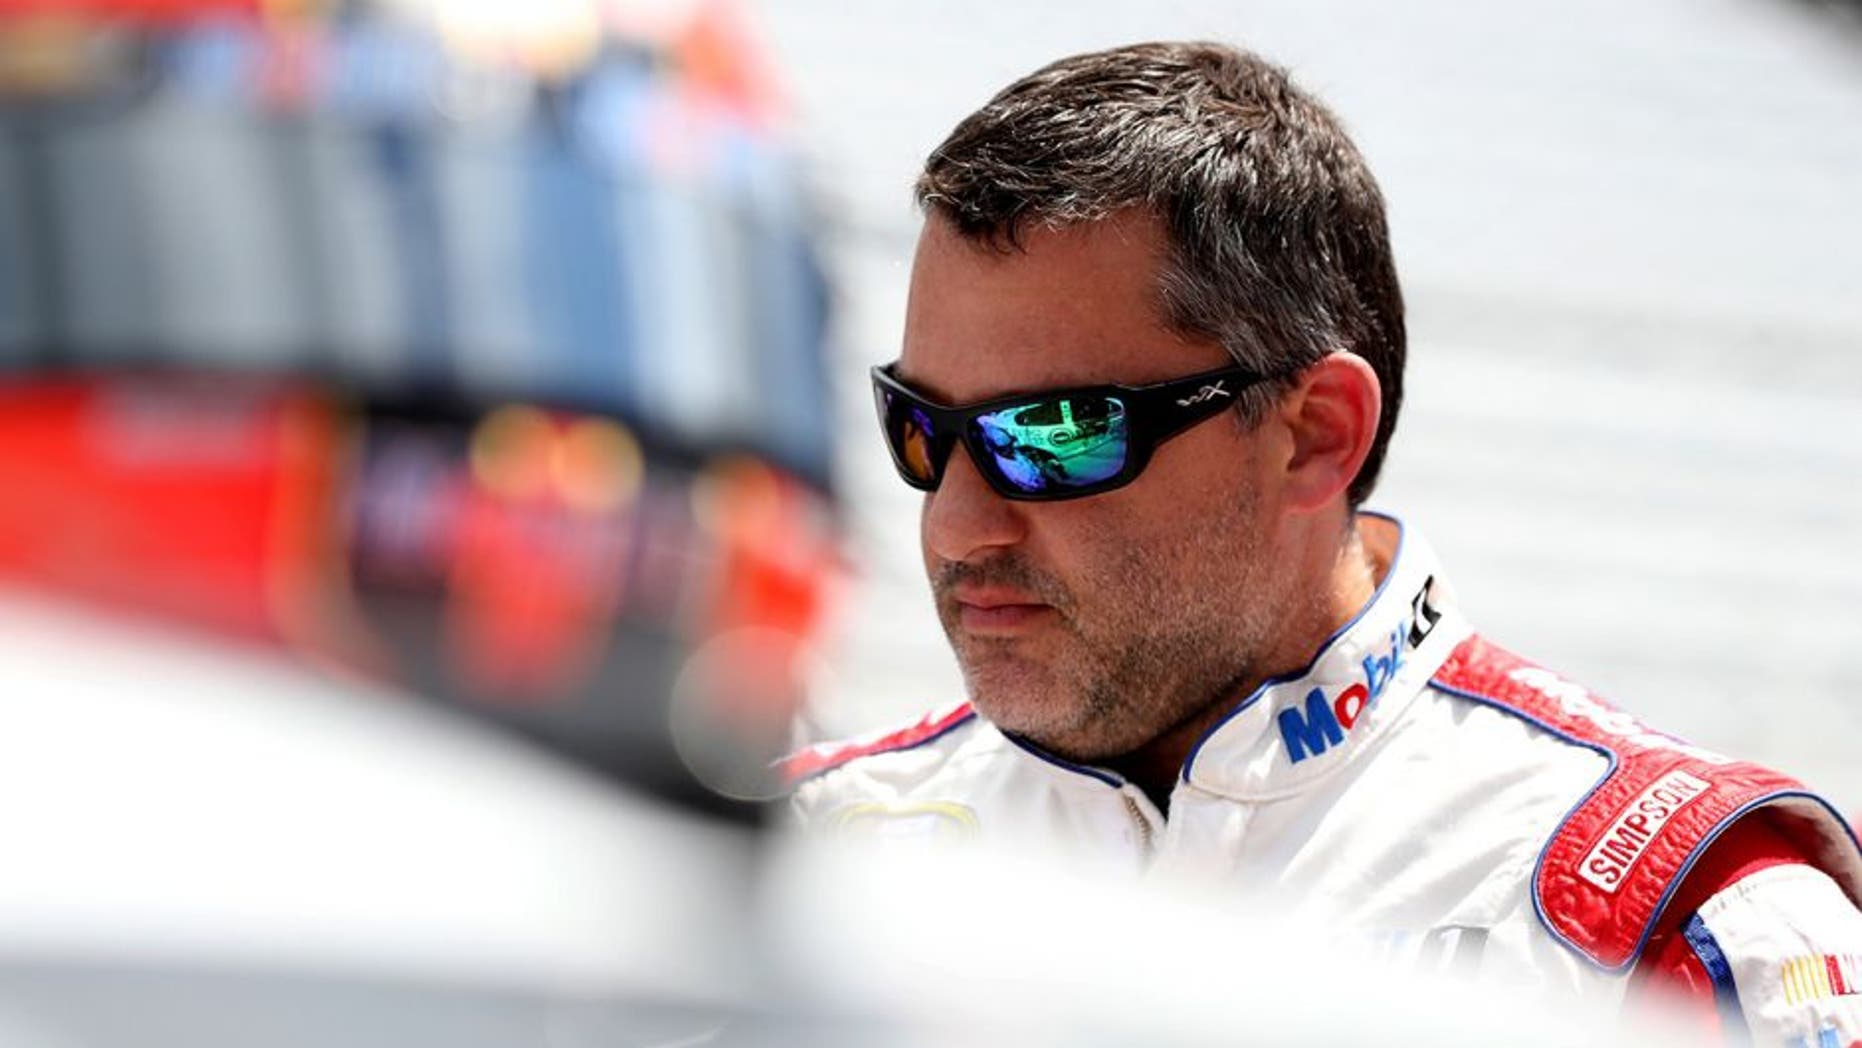 INDIANAPOLIS, IN - JULY 23: Tony Stewart, driver of the #14 Mobil 1/Chevy Summer Sell Down Chevrolet, stands on the grid during qualifying for the NASCAR Sprint Cup Series Crown Royal Presents The Combat Wounded Coalition 400 at Indianapolis Motor Speedway on July 23, 2016 in Indianapolis, Indiana. (Photo by Sean Gardner/NASCAR via Getty Images)